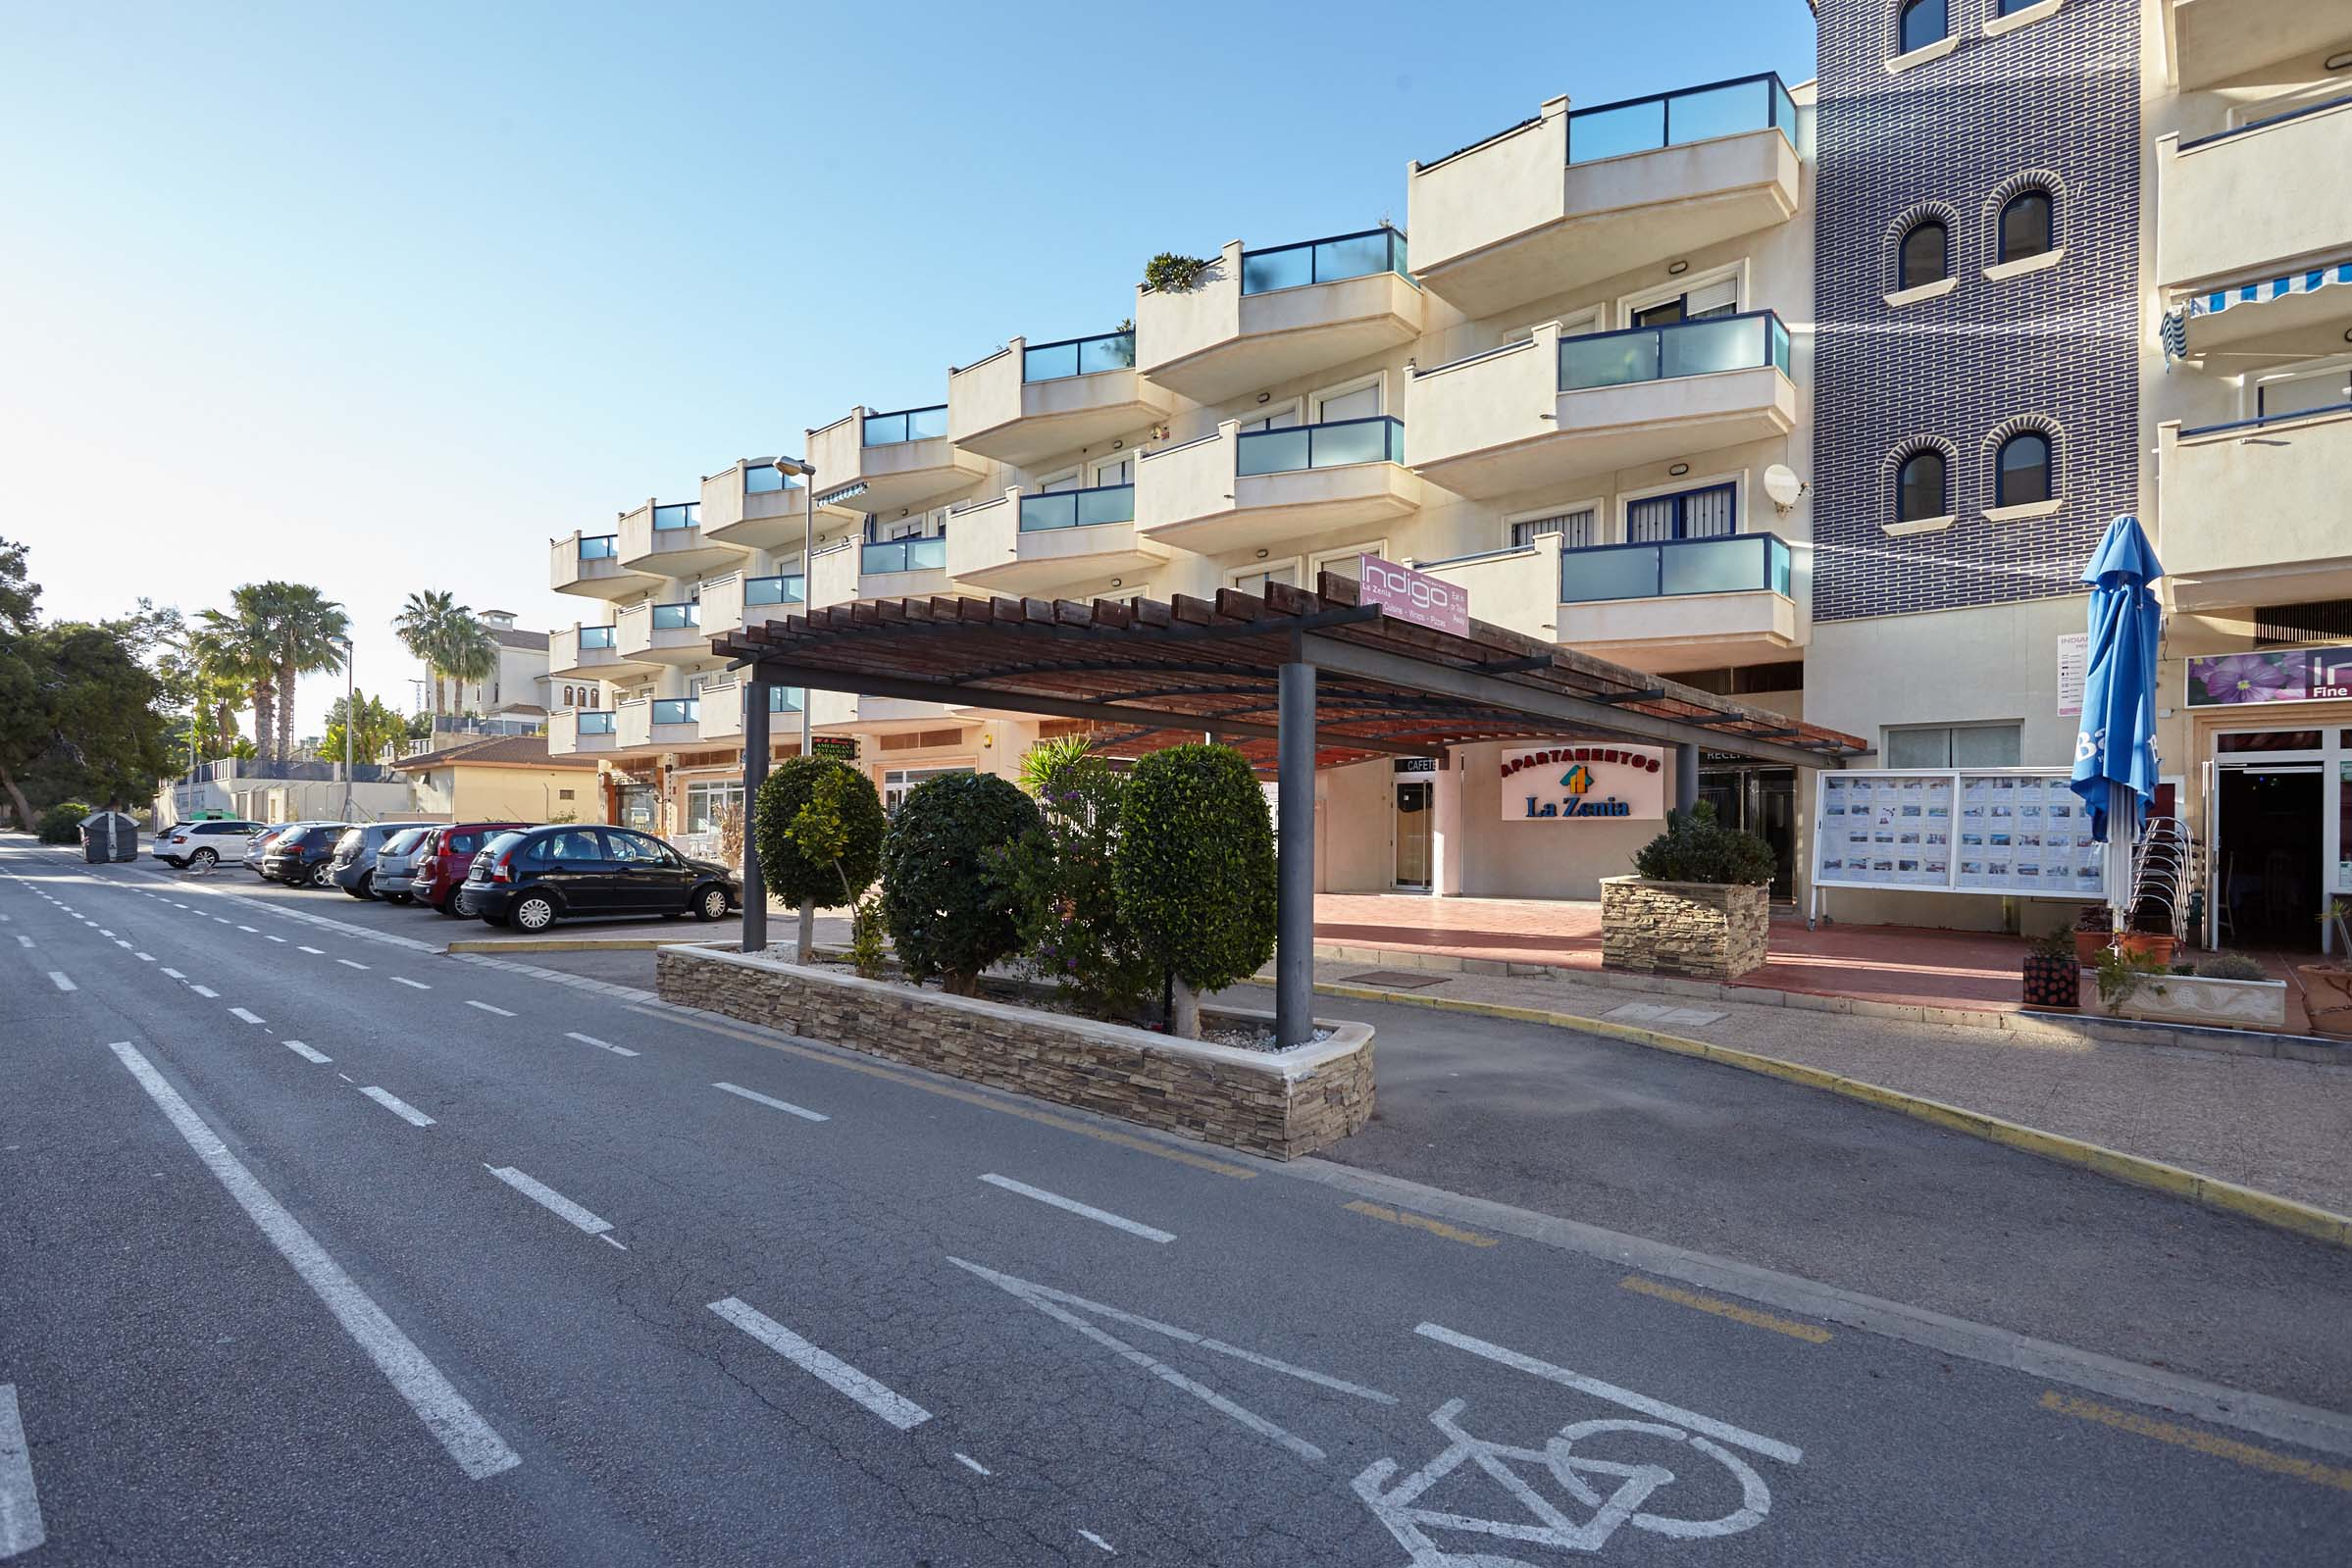 Apartment Espanhouse La Zenia 105 photo 21581639